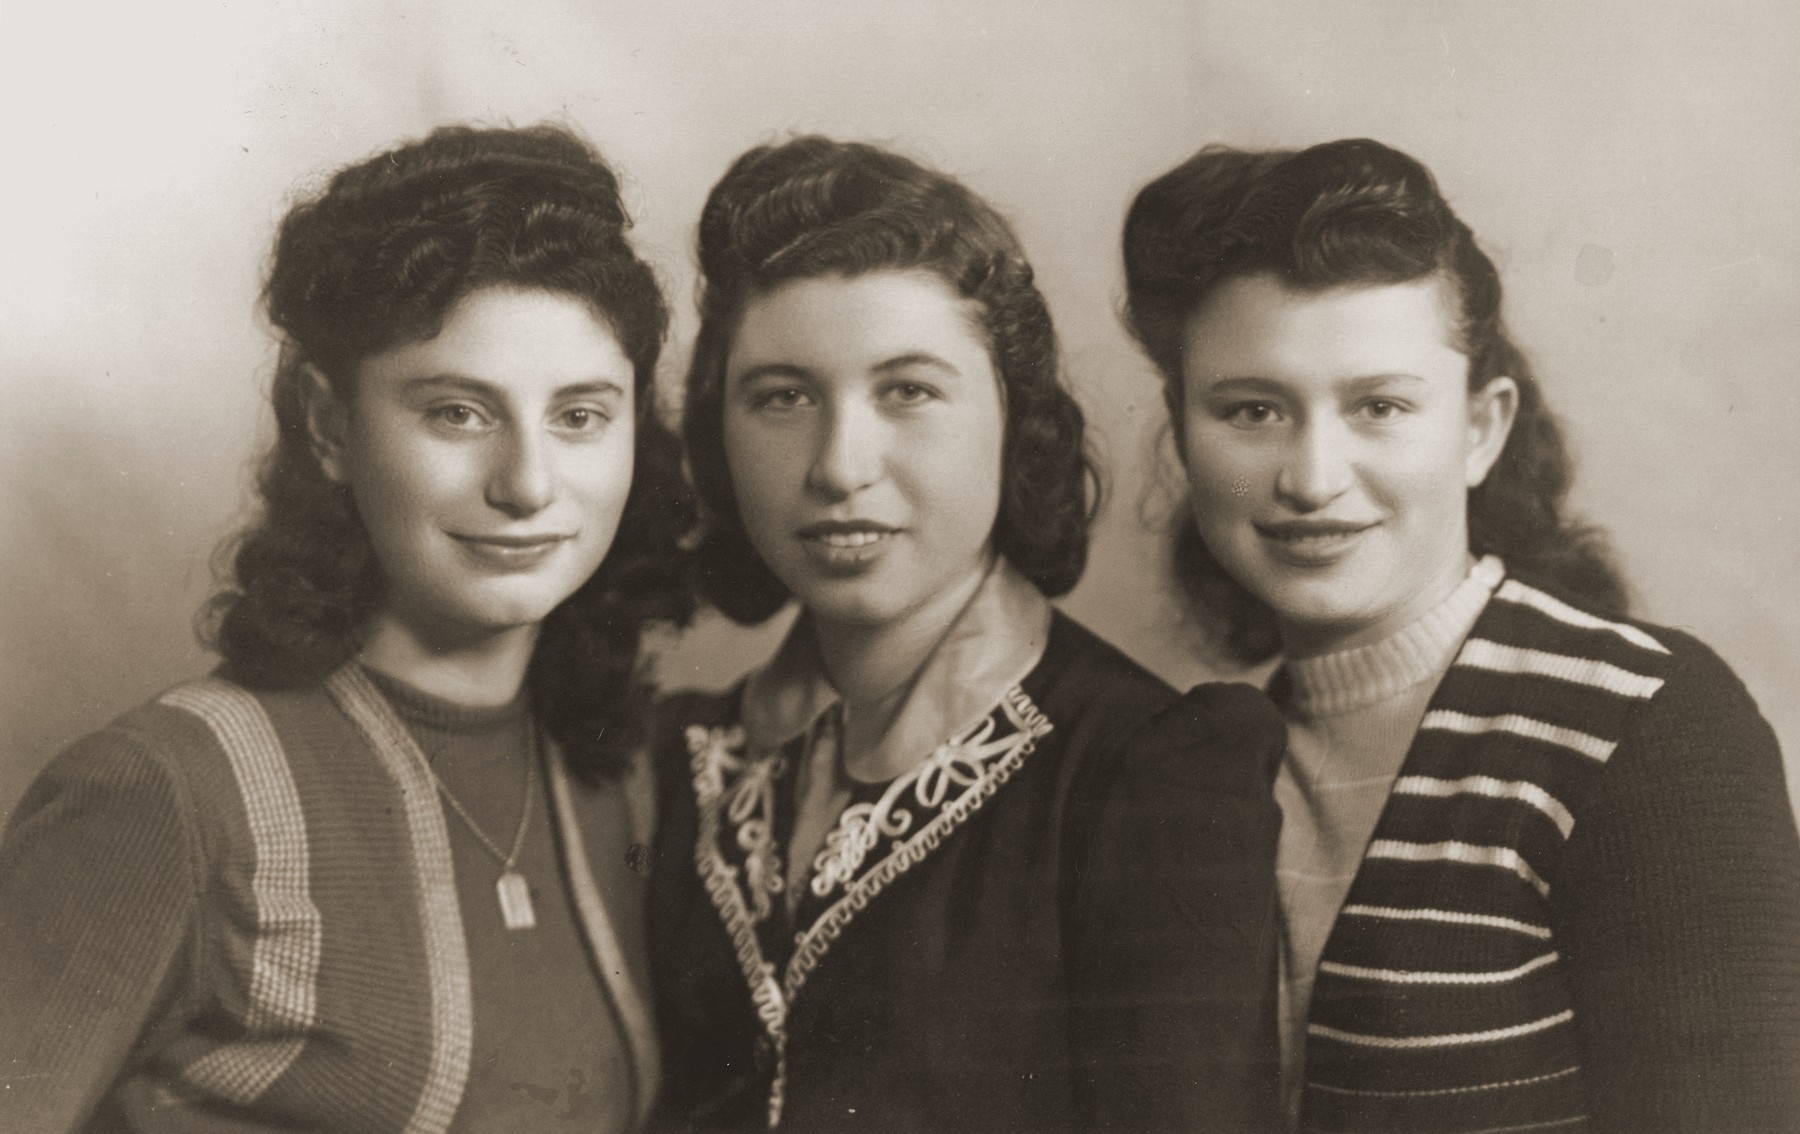 Close-up portrait of three Jewish teenage girls in the Bad Reichenall displaced persons camp.  Rochelle Szklarski is pictured center, with her friends: Shirley Szydlo and Fejga Goldsztajn.